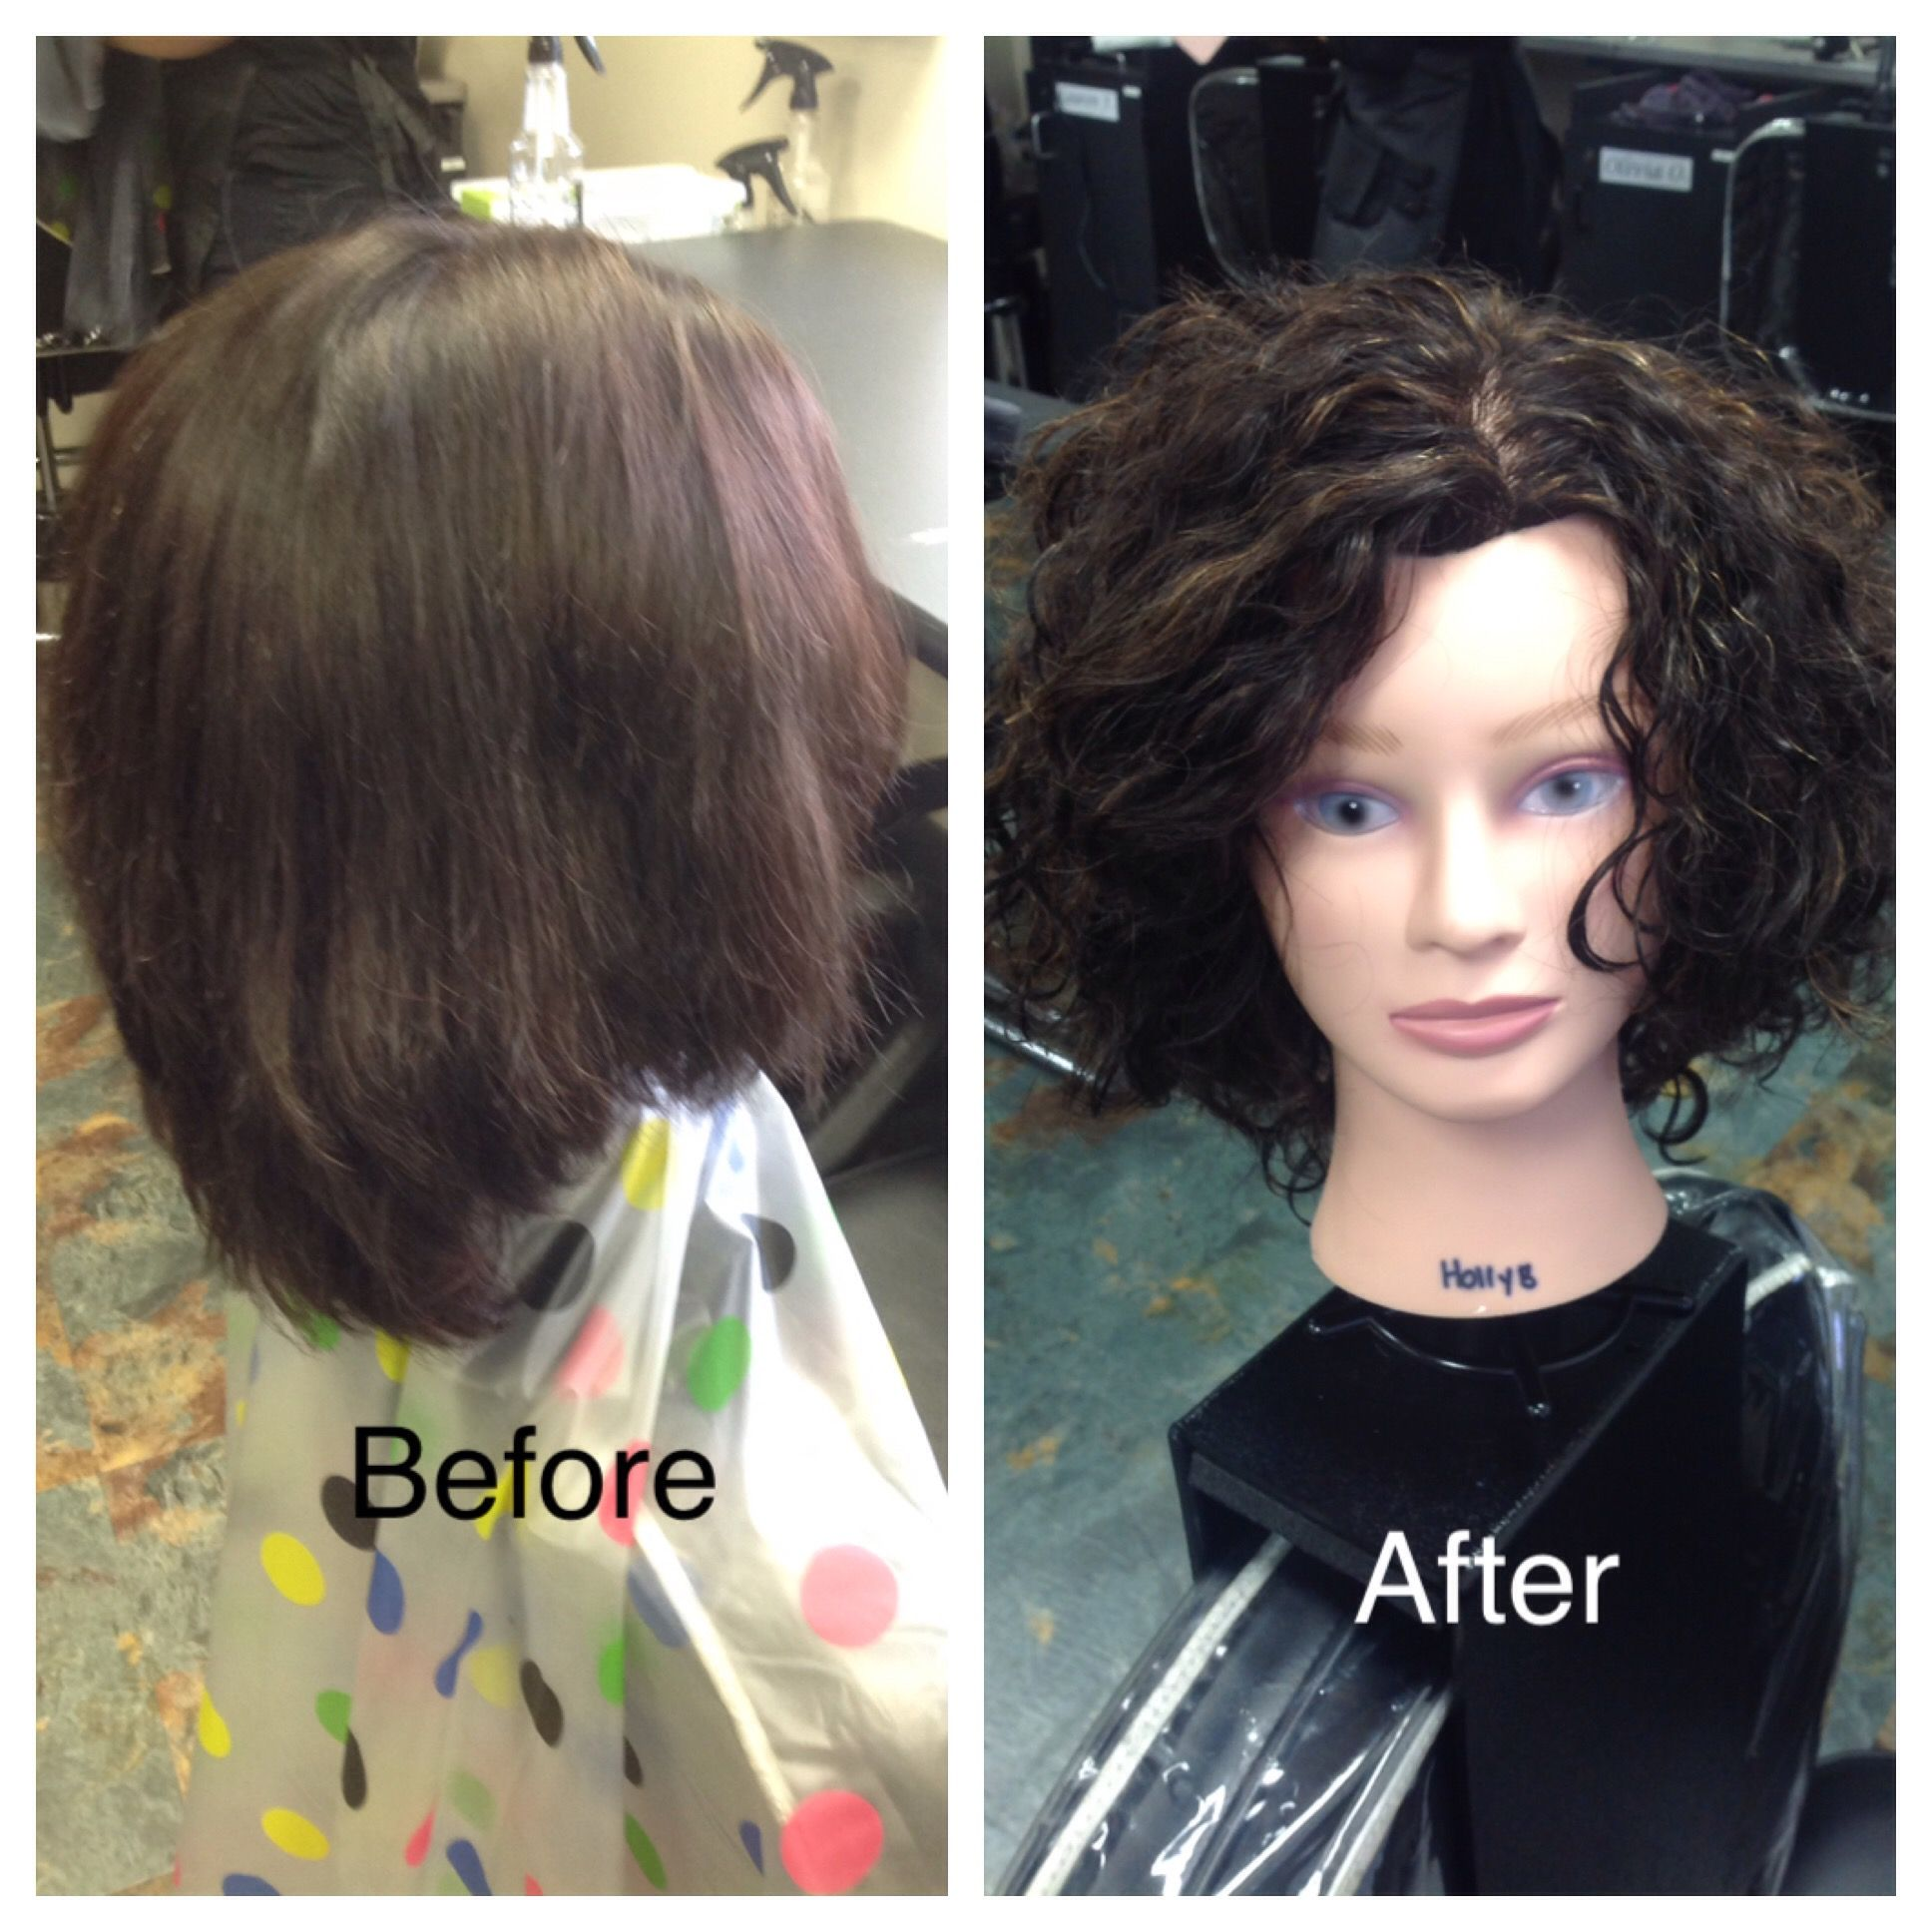 Straight perm solution - Basic Wrap Using Grey Rods And Classic Body Perm Solution